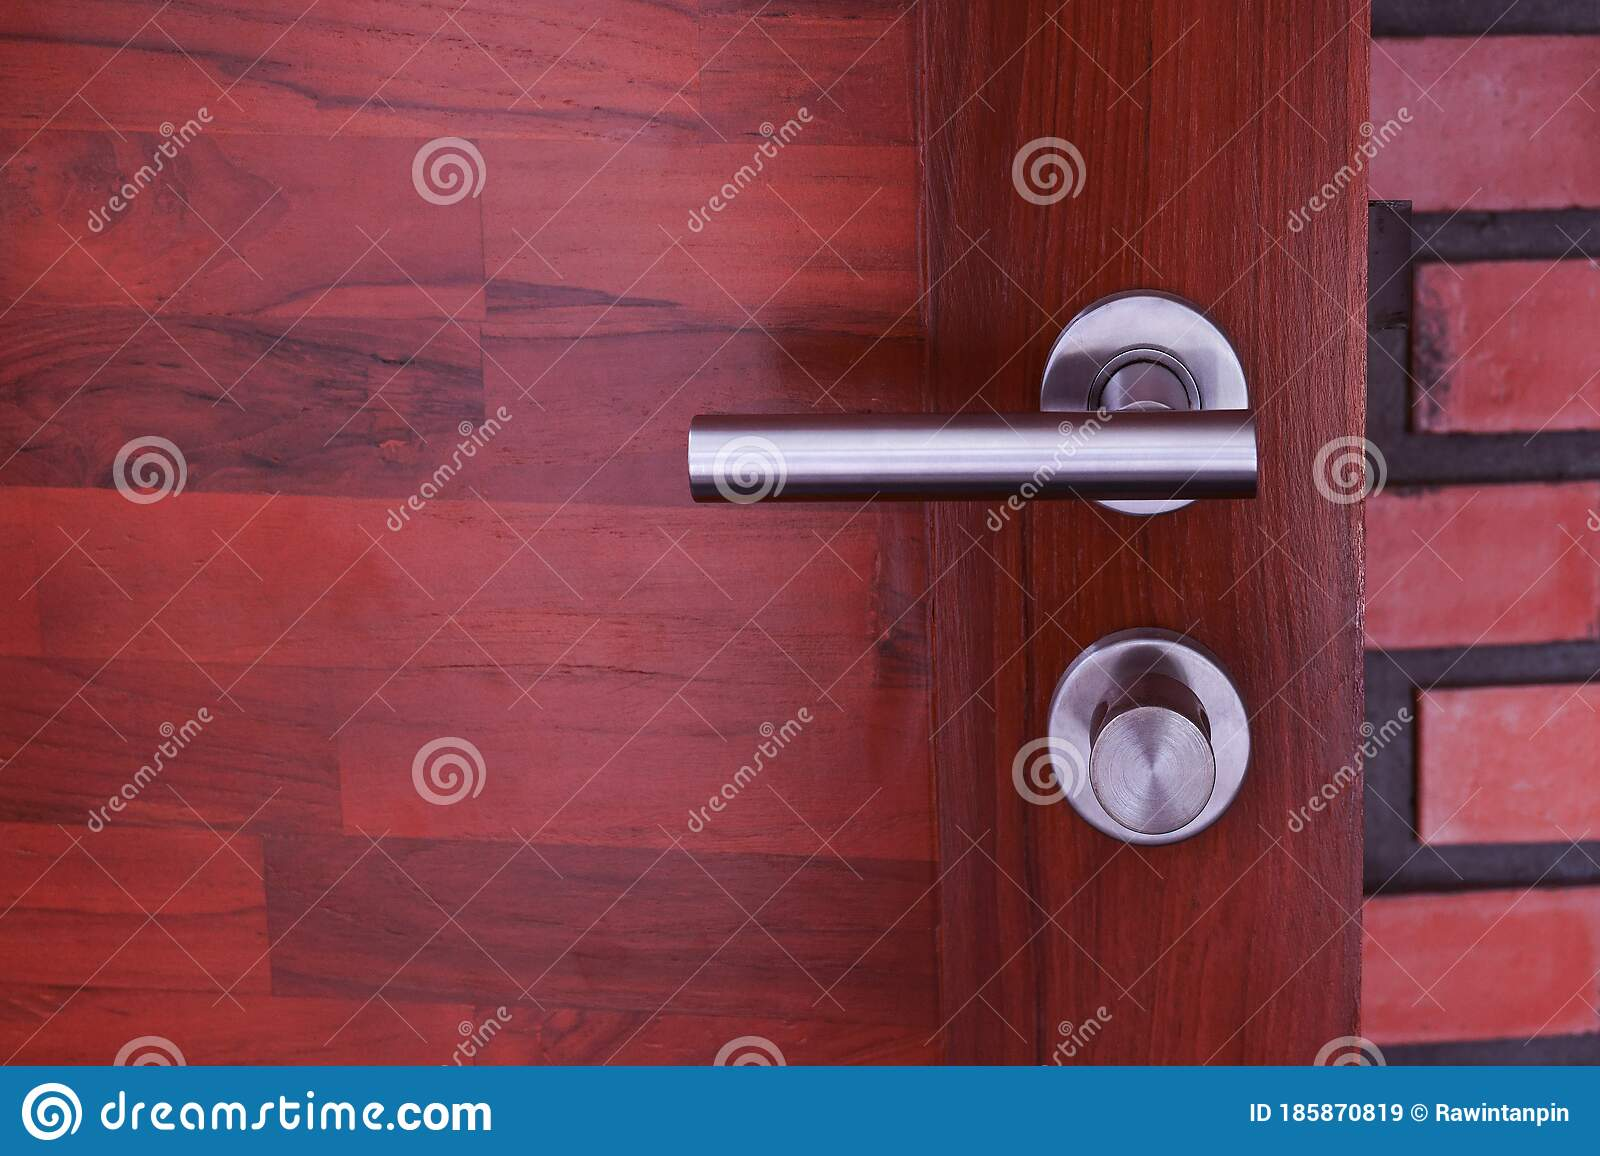 Stainless Or Aluminum Steel Modern Door Handle On Wooden Door Handle And Keyhole Detail Door Lock Interior Door Knob In Bedroom Stock Image Image Of Indoors Hand 185870819